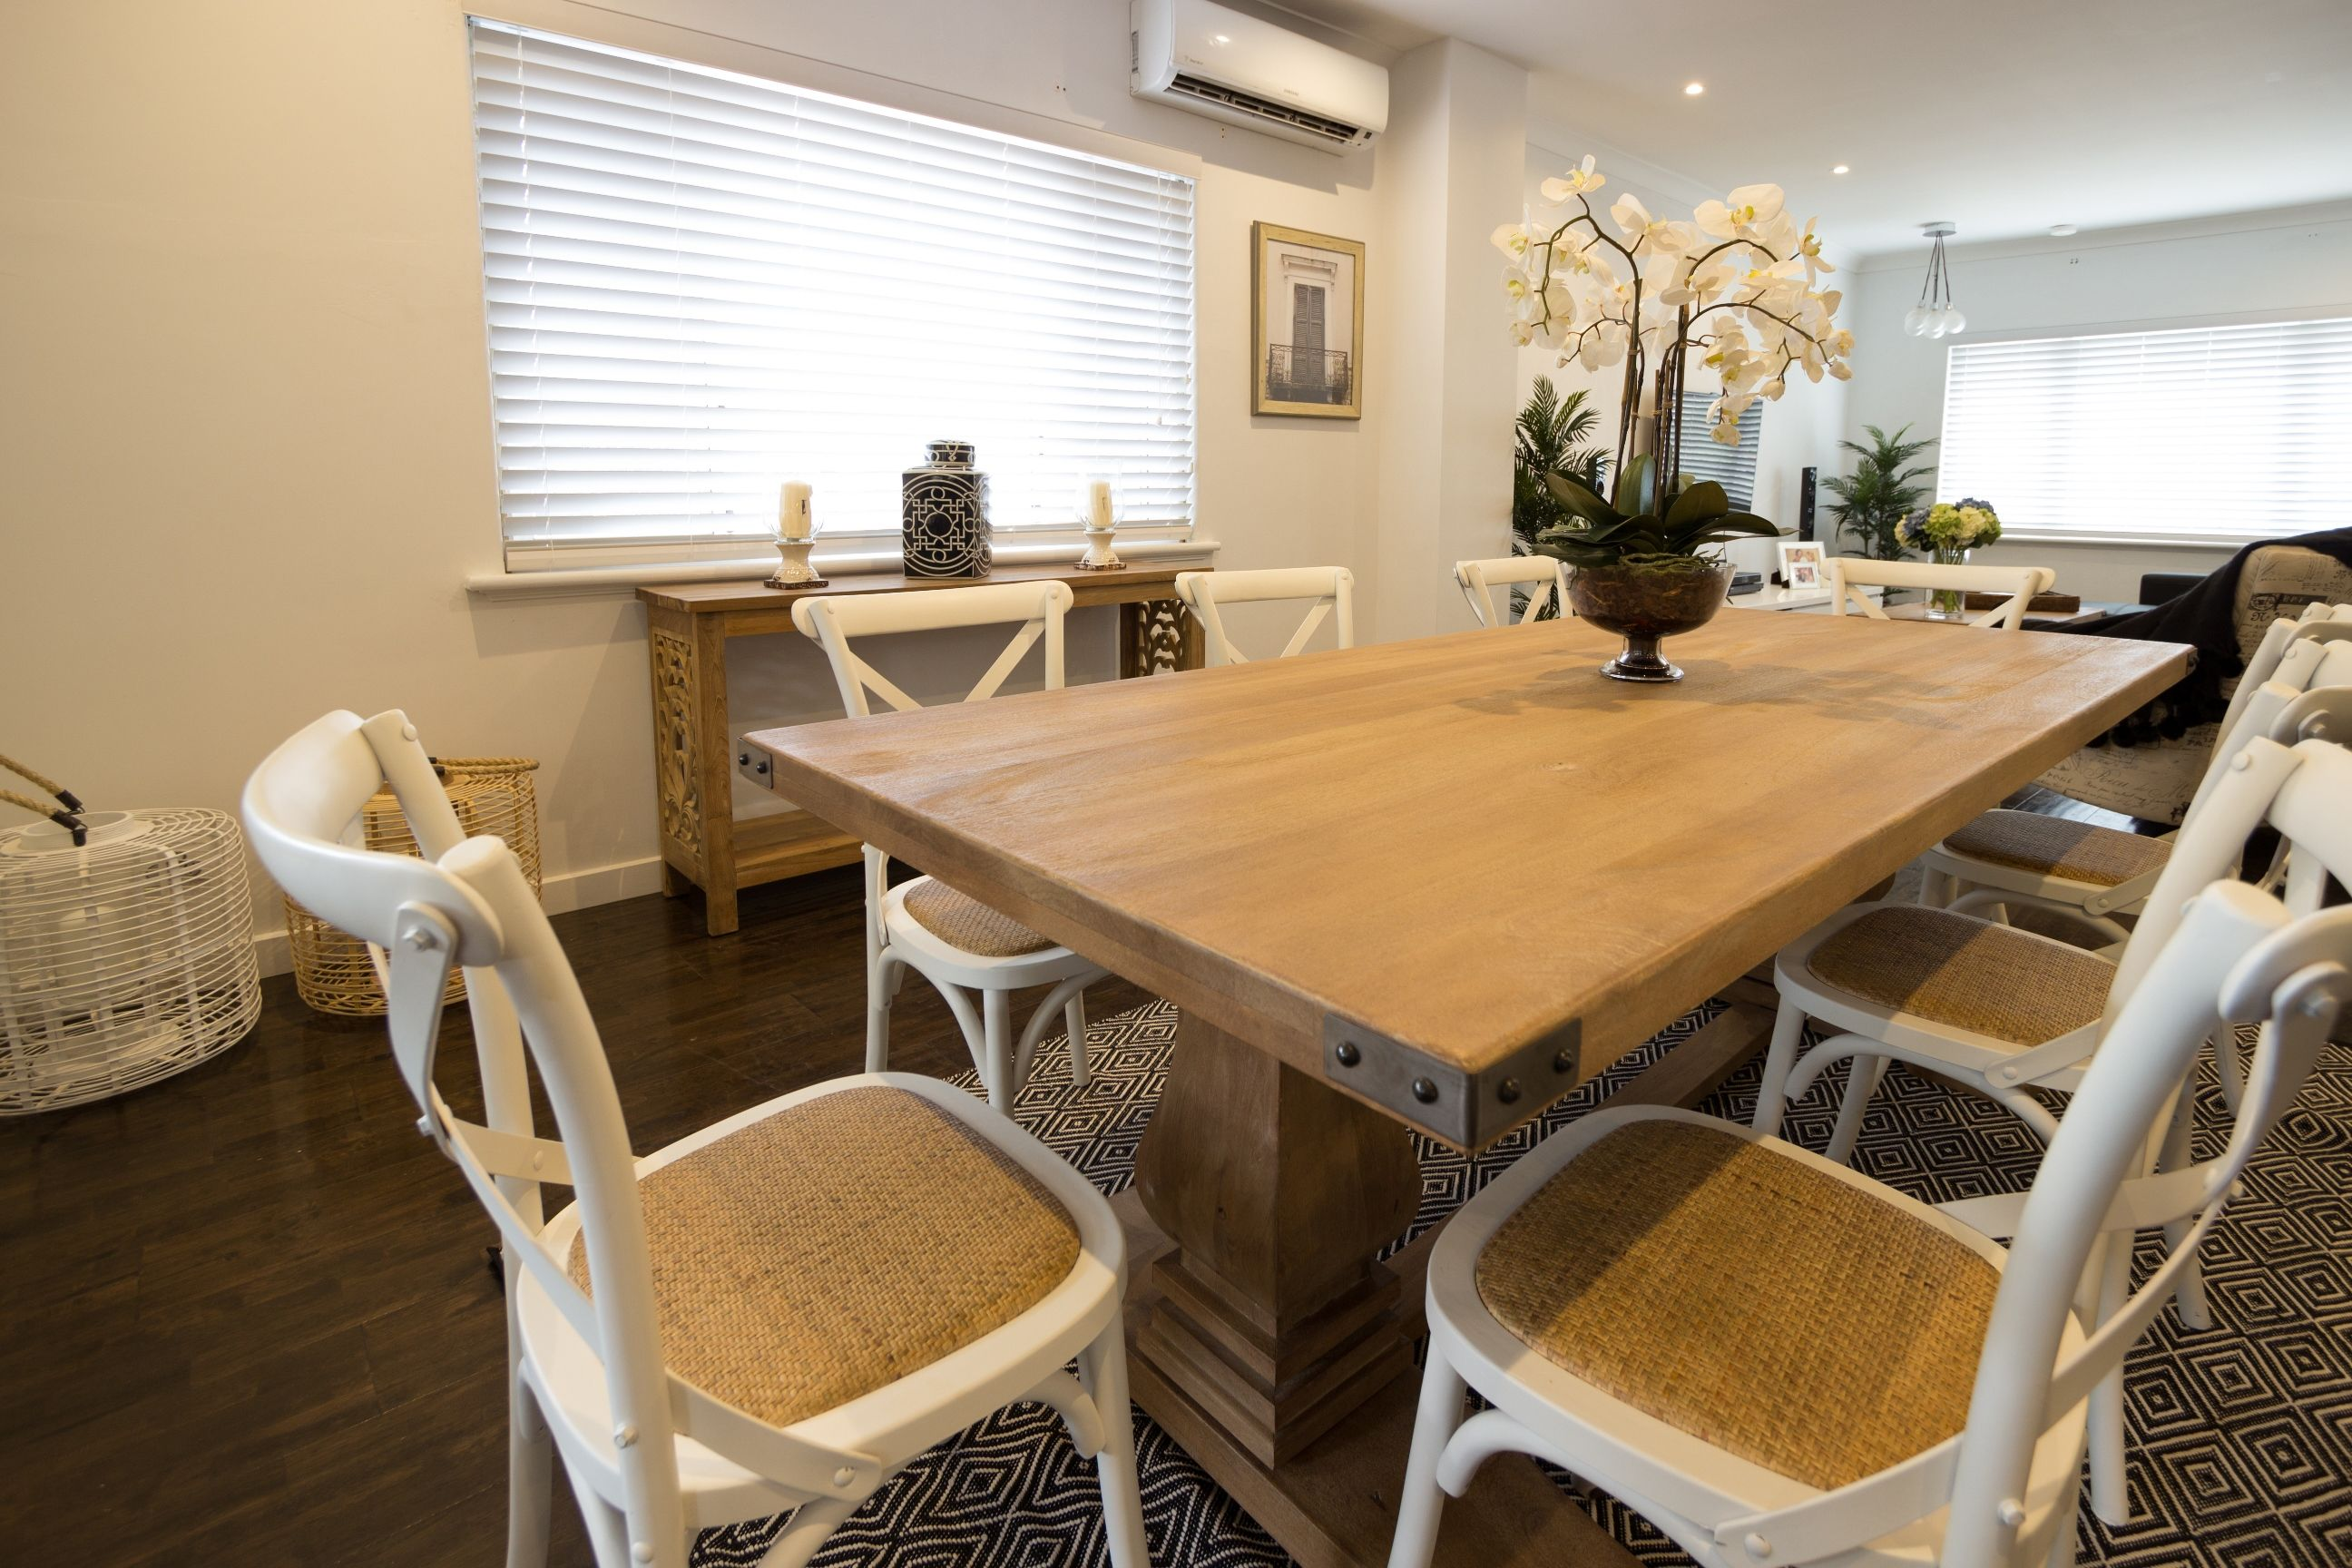 A Casual Dining Room With A Large Timber Table And White Cross Back Chairs Timber Dining Table Dining Chairs Cross Back Dining Chairs